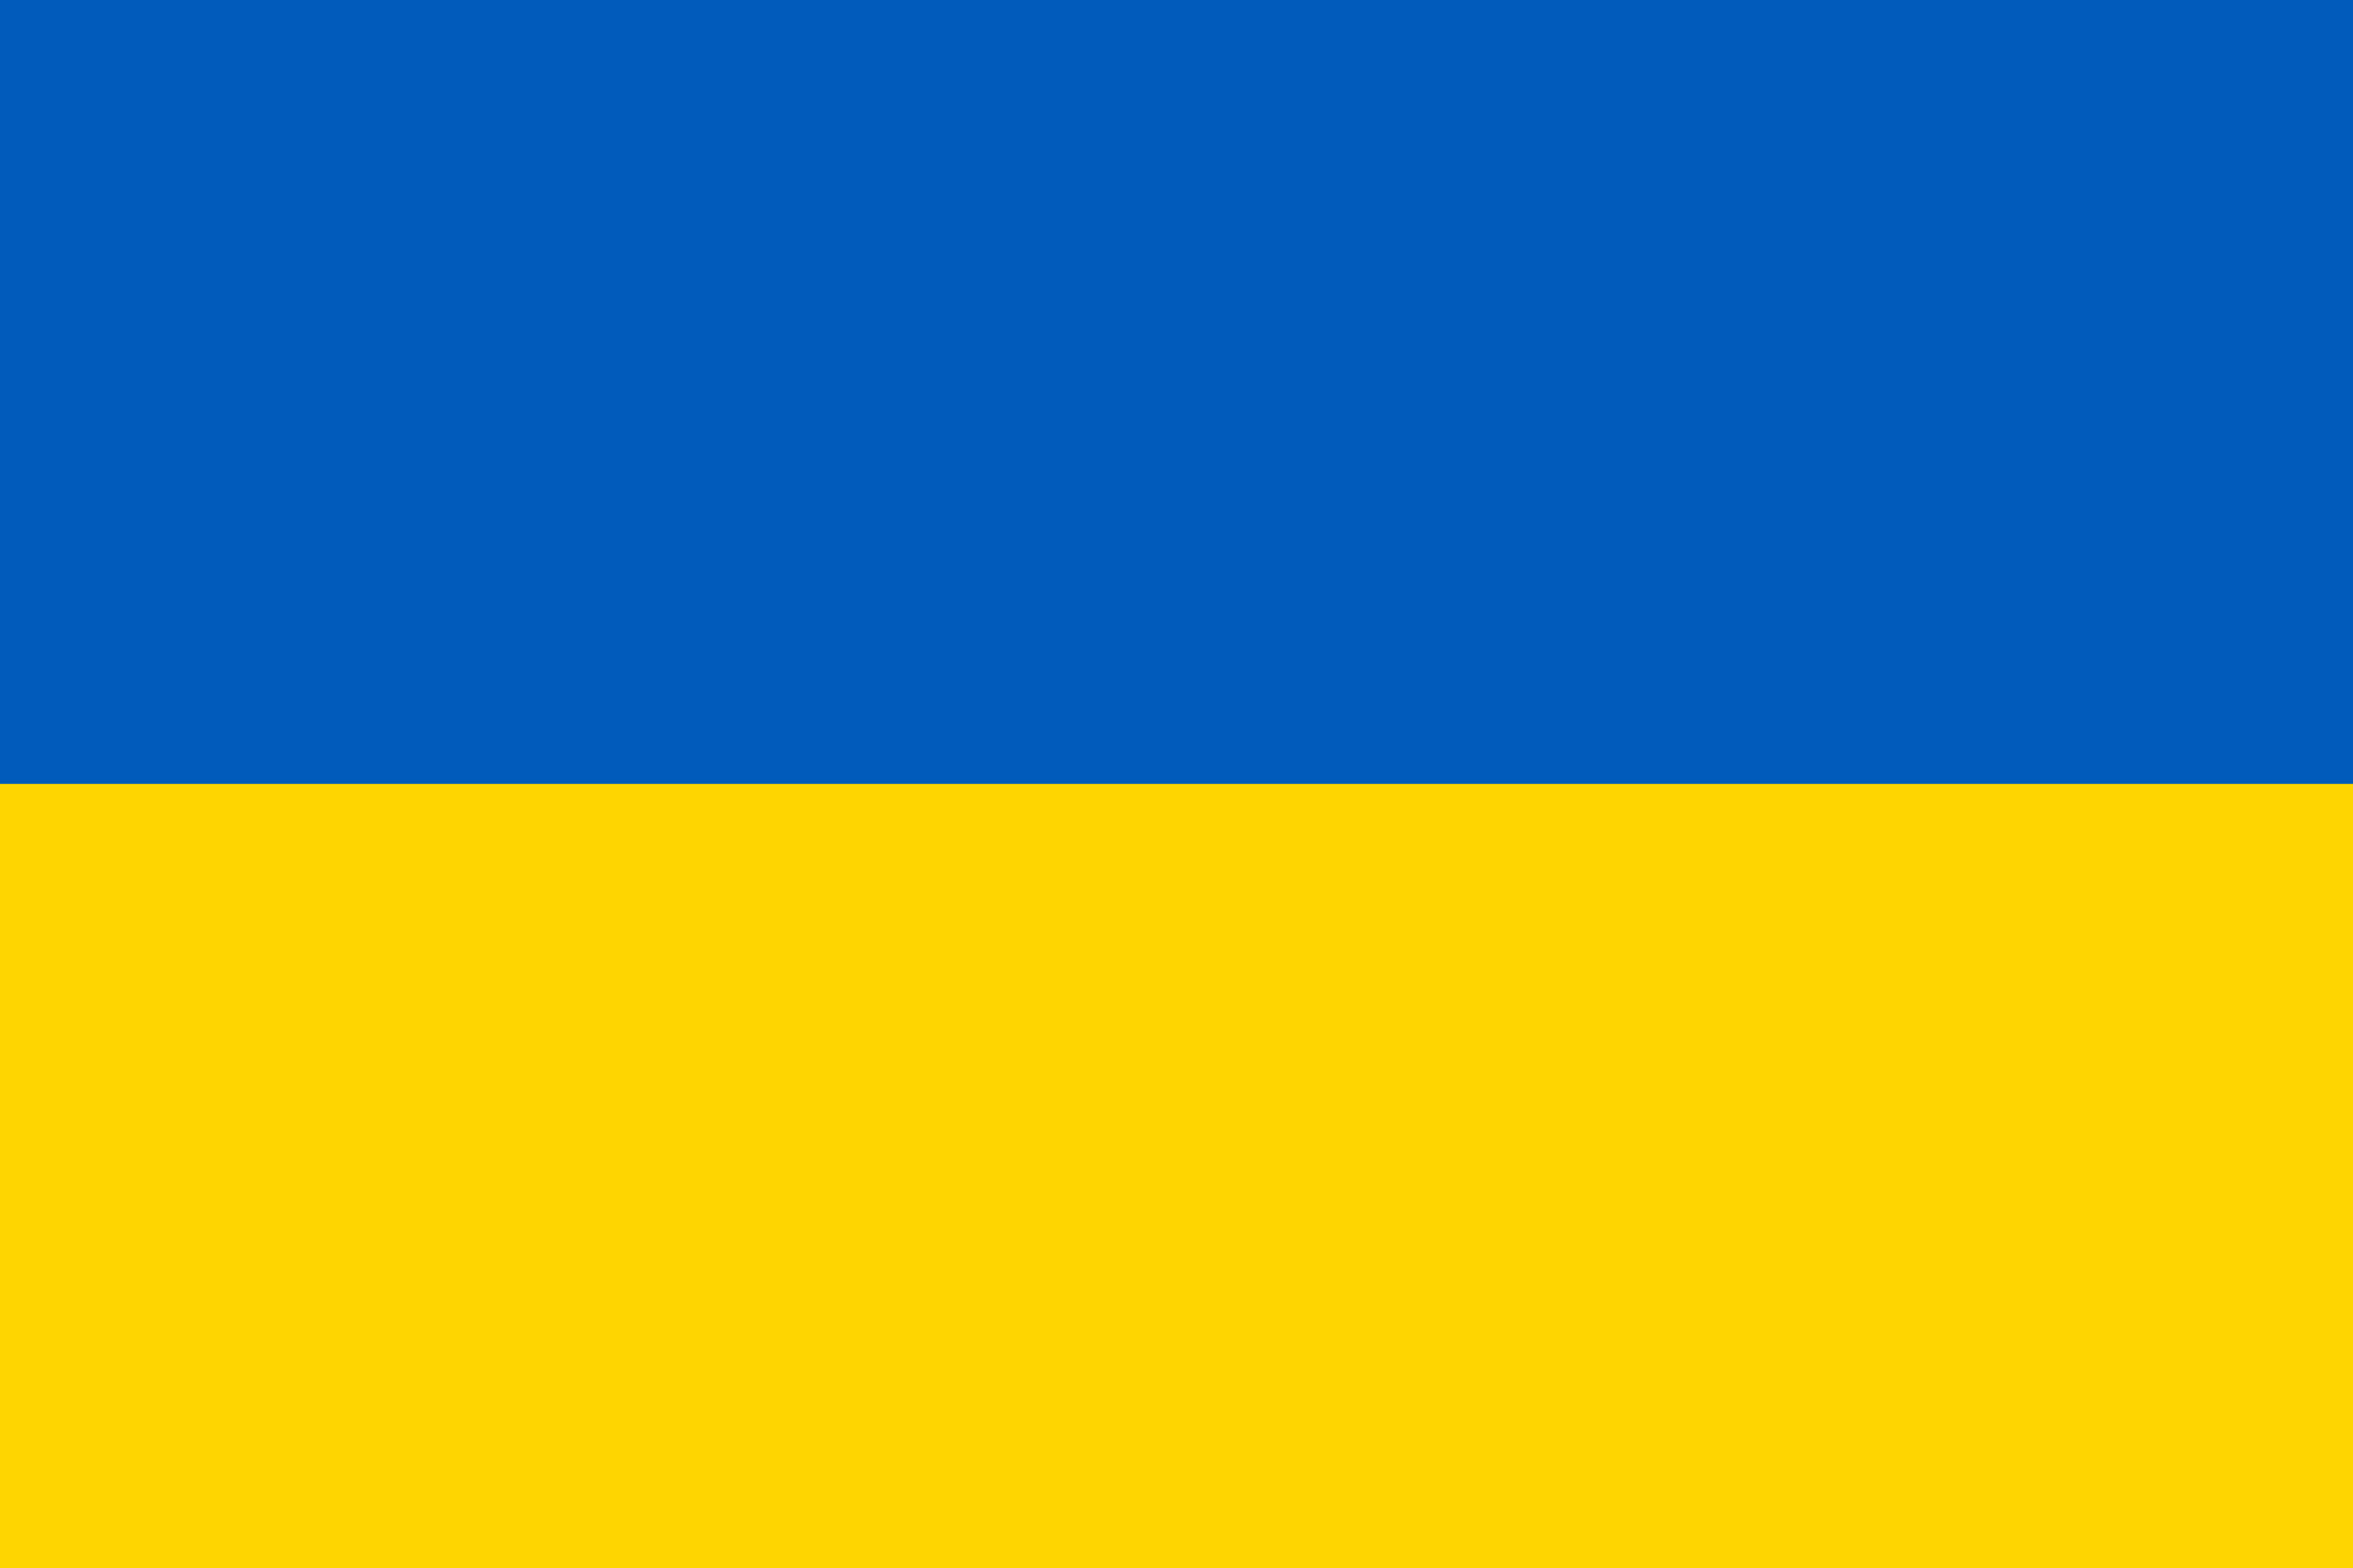 Ukrainska flaggan.